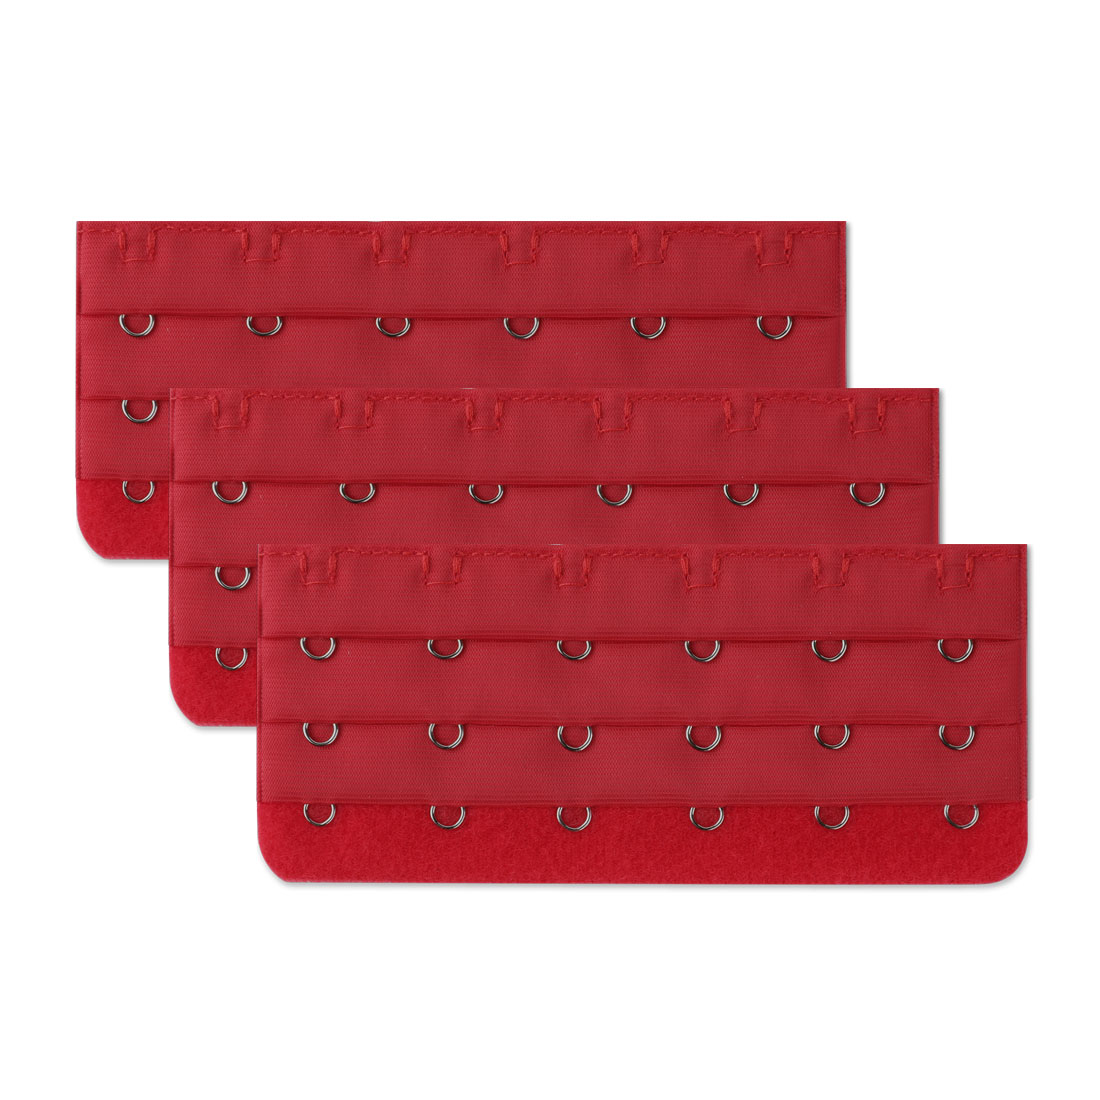 Ladies 3 Rows 6 Hooks Adjustable Bra Back Extension Strap Expander 3 Pcs Red